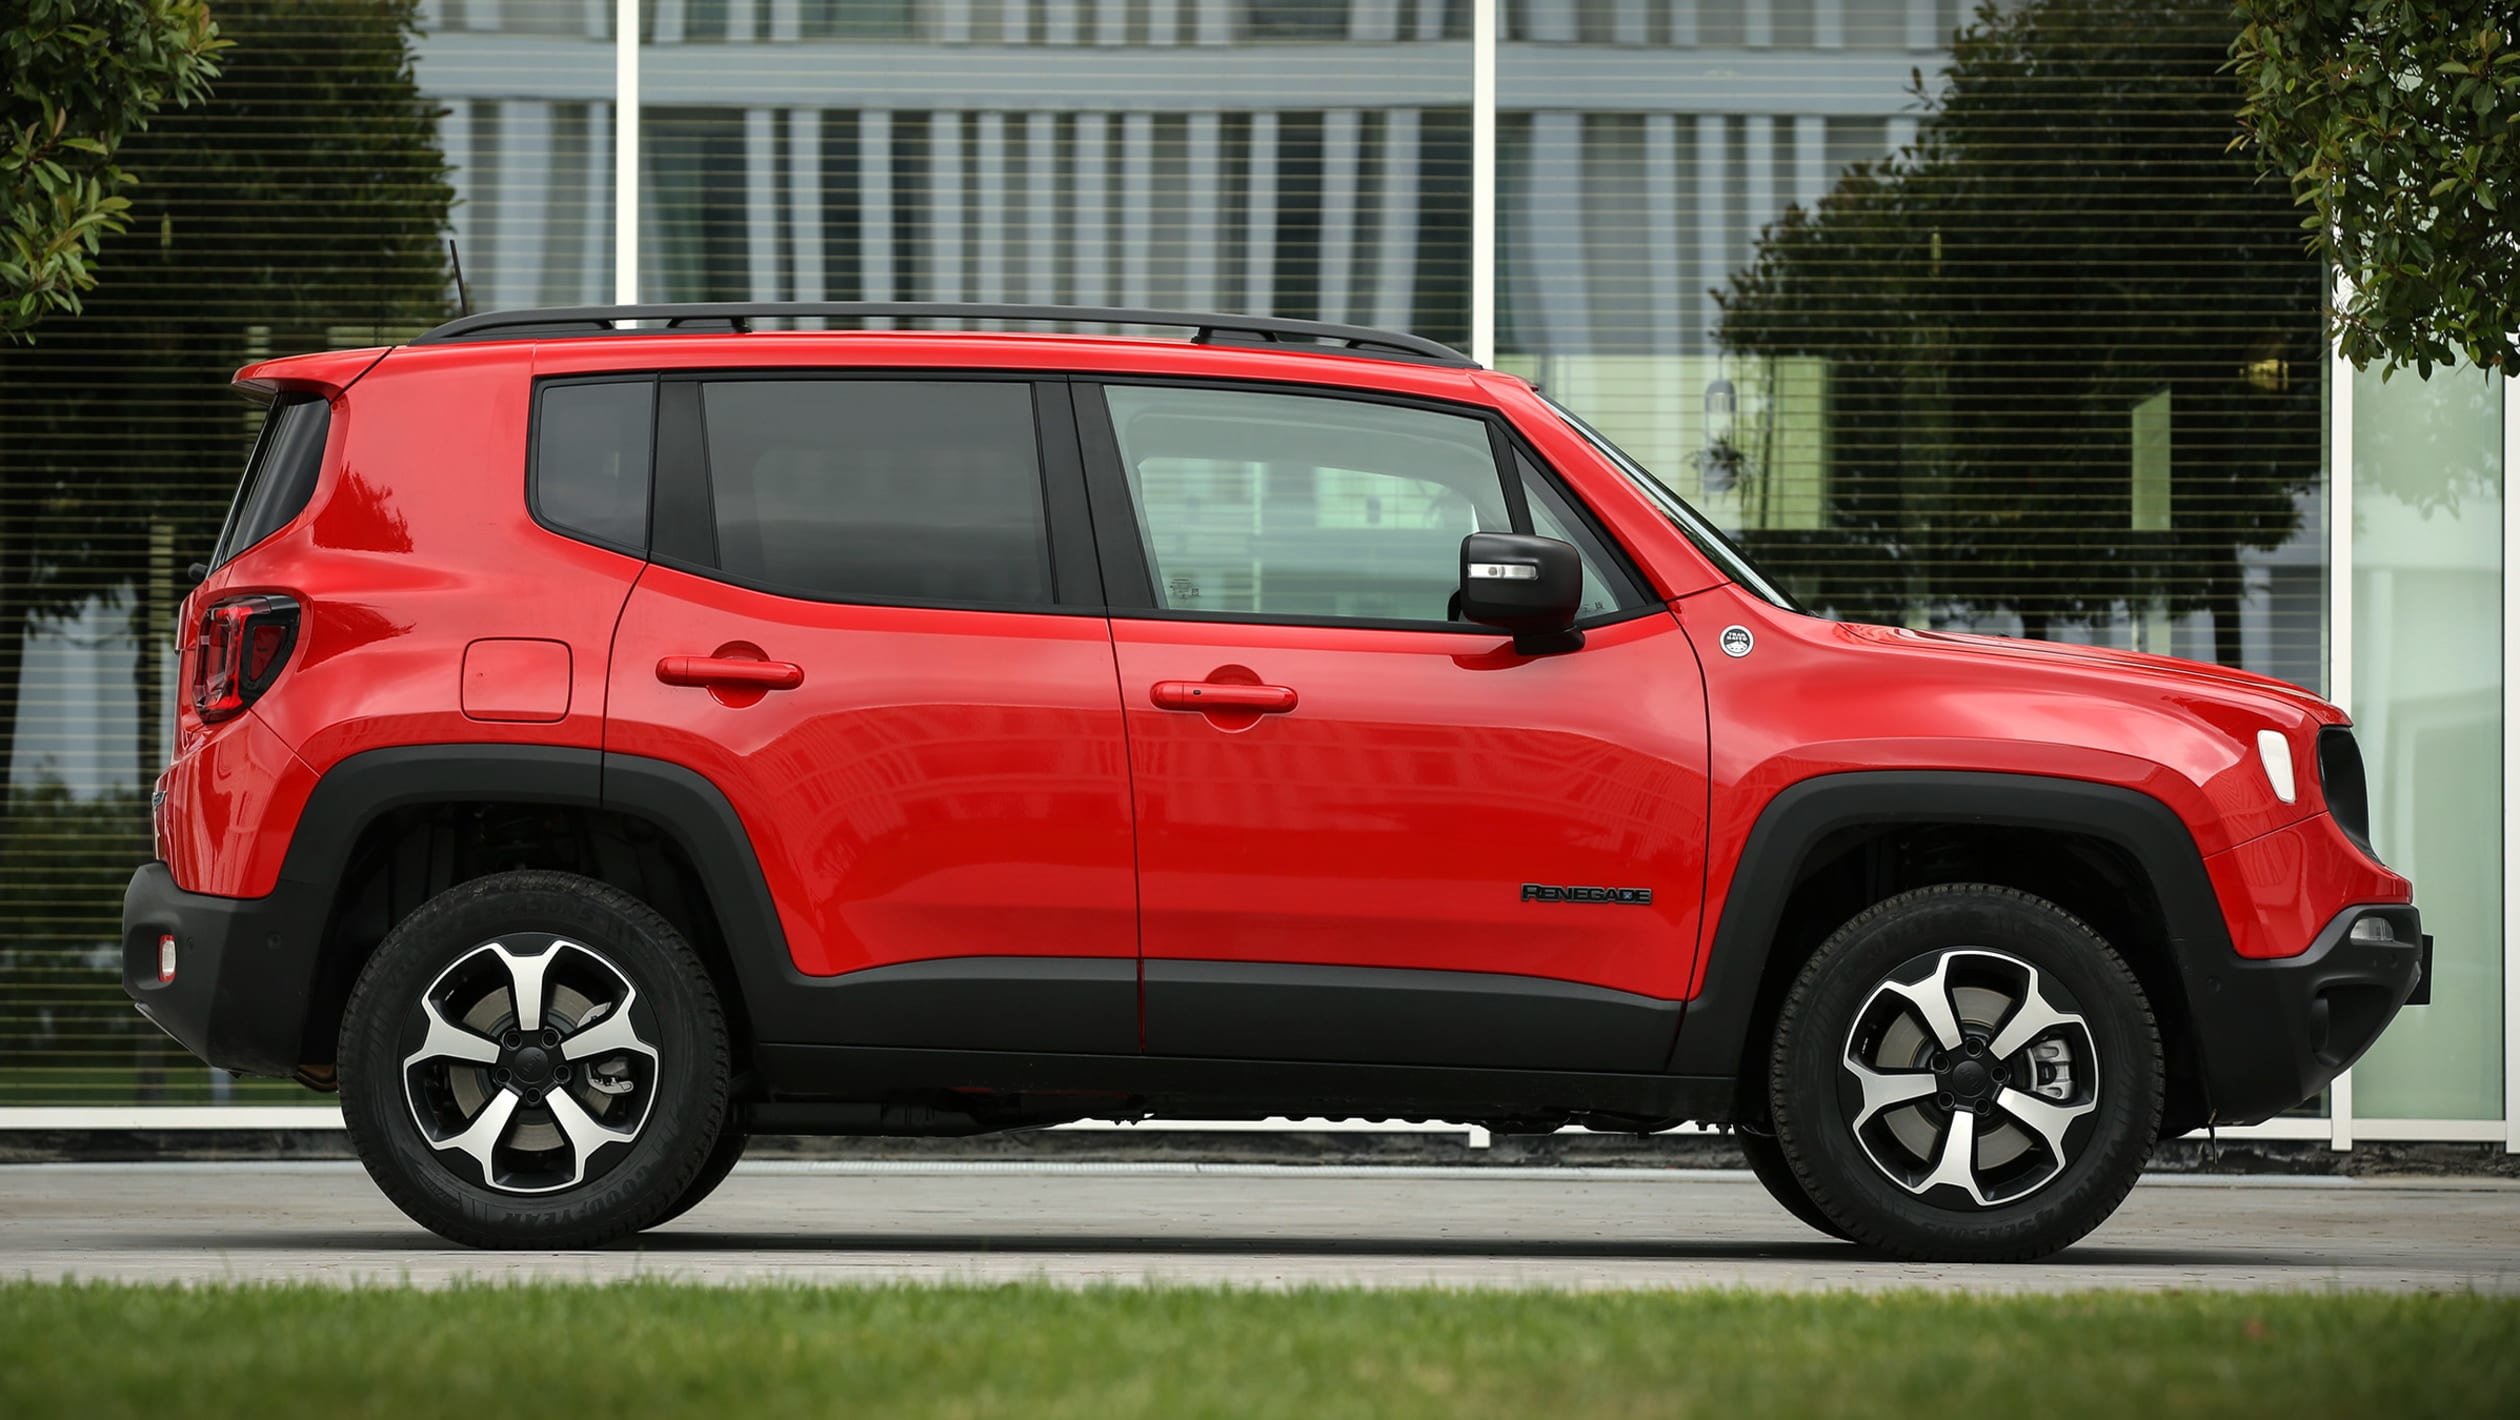 2014 - [Jeep] Renegade - Page 15 Jeep%20Renegade%204xe%202020-5